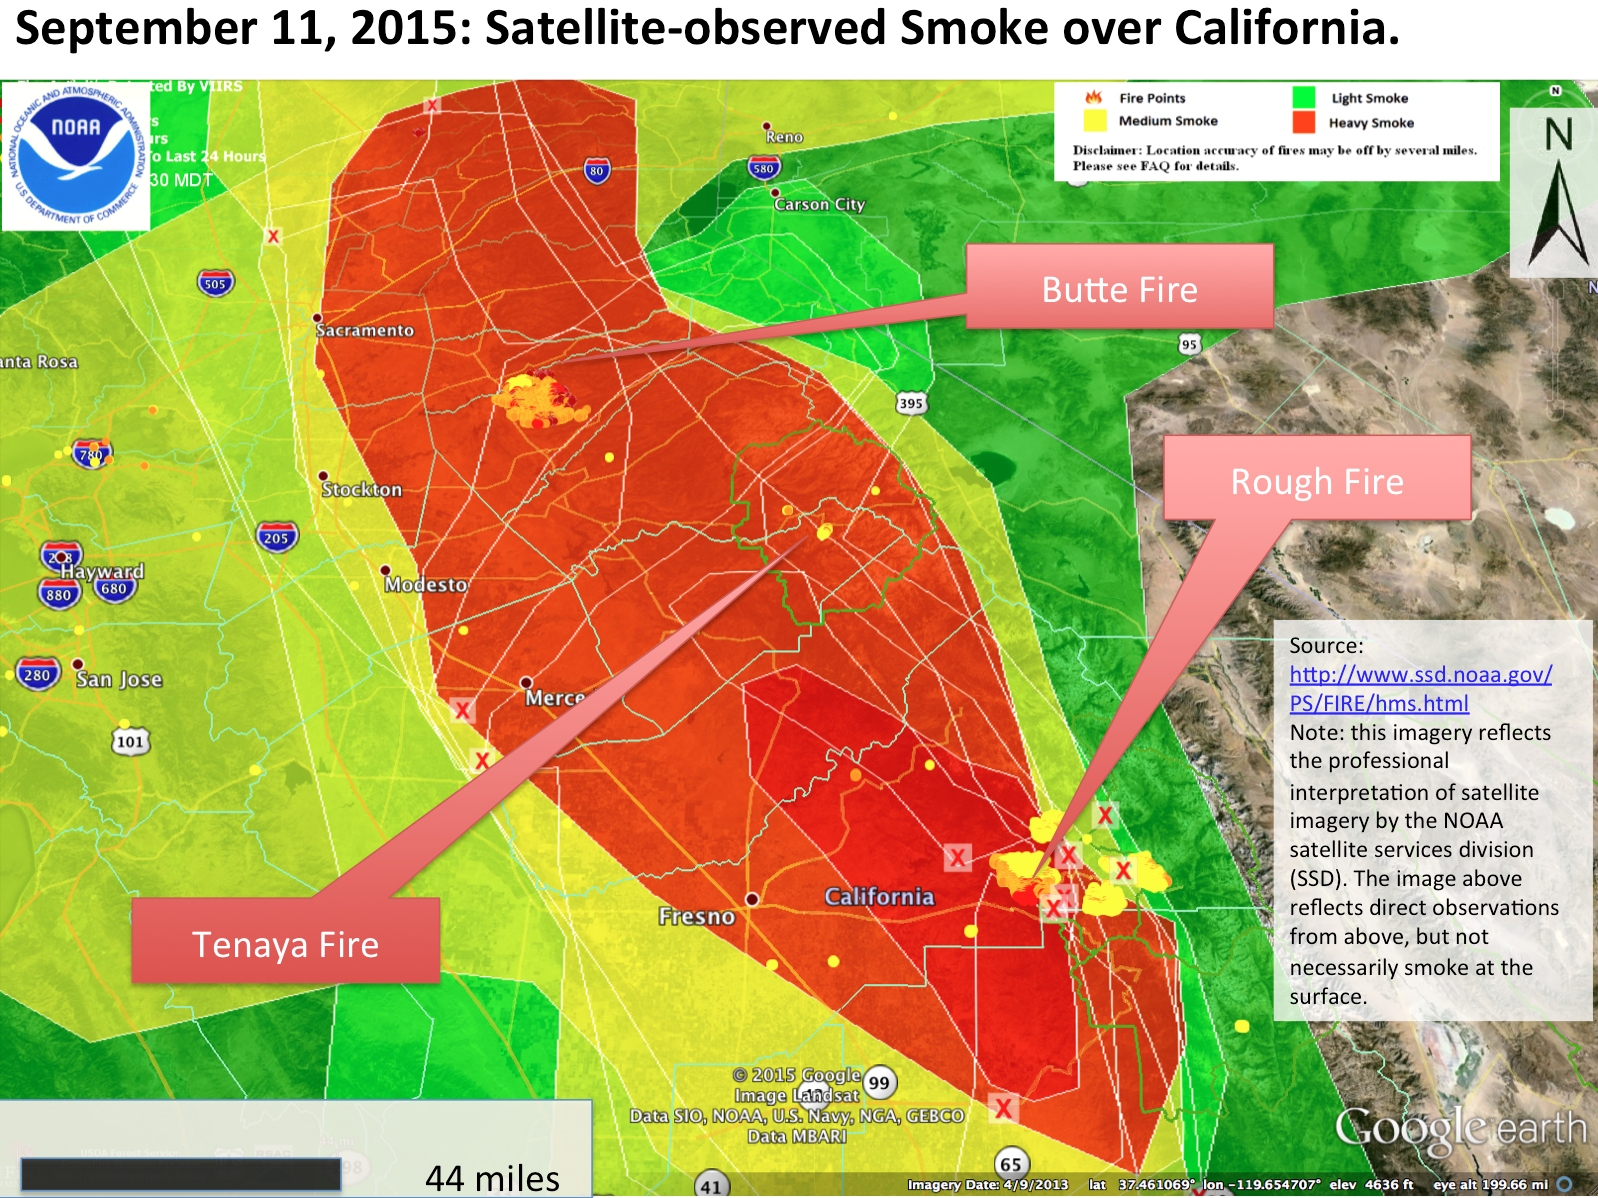 hazard mapping system analysis shows a large high density plume of smoke which joined with the plume from the rough fire to darken the skies this evening